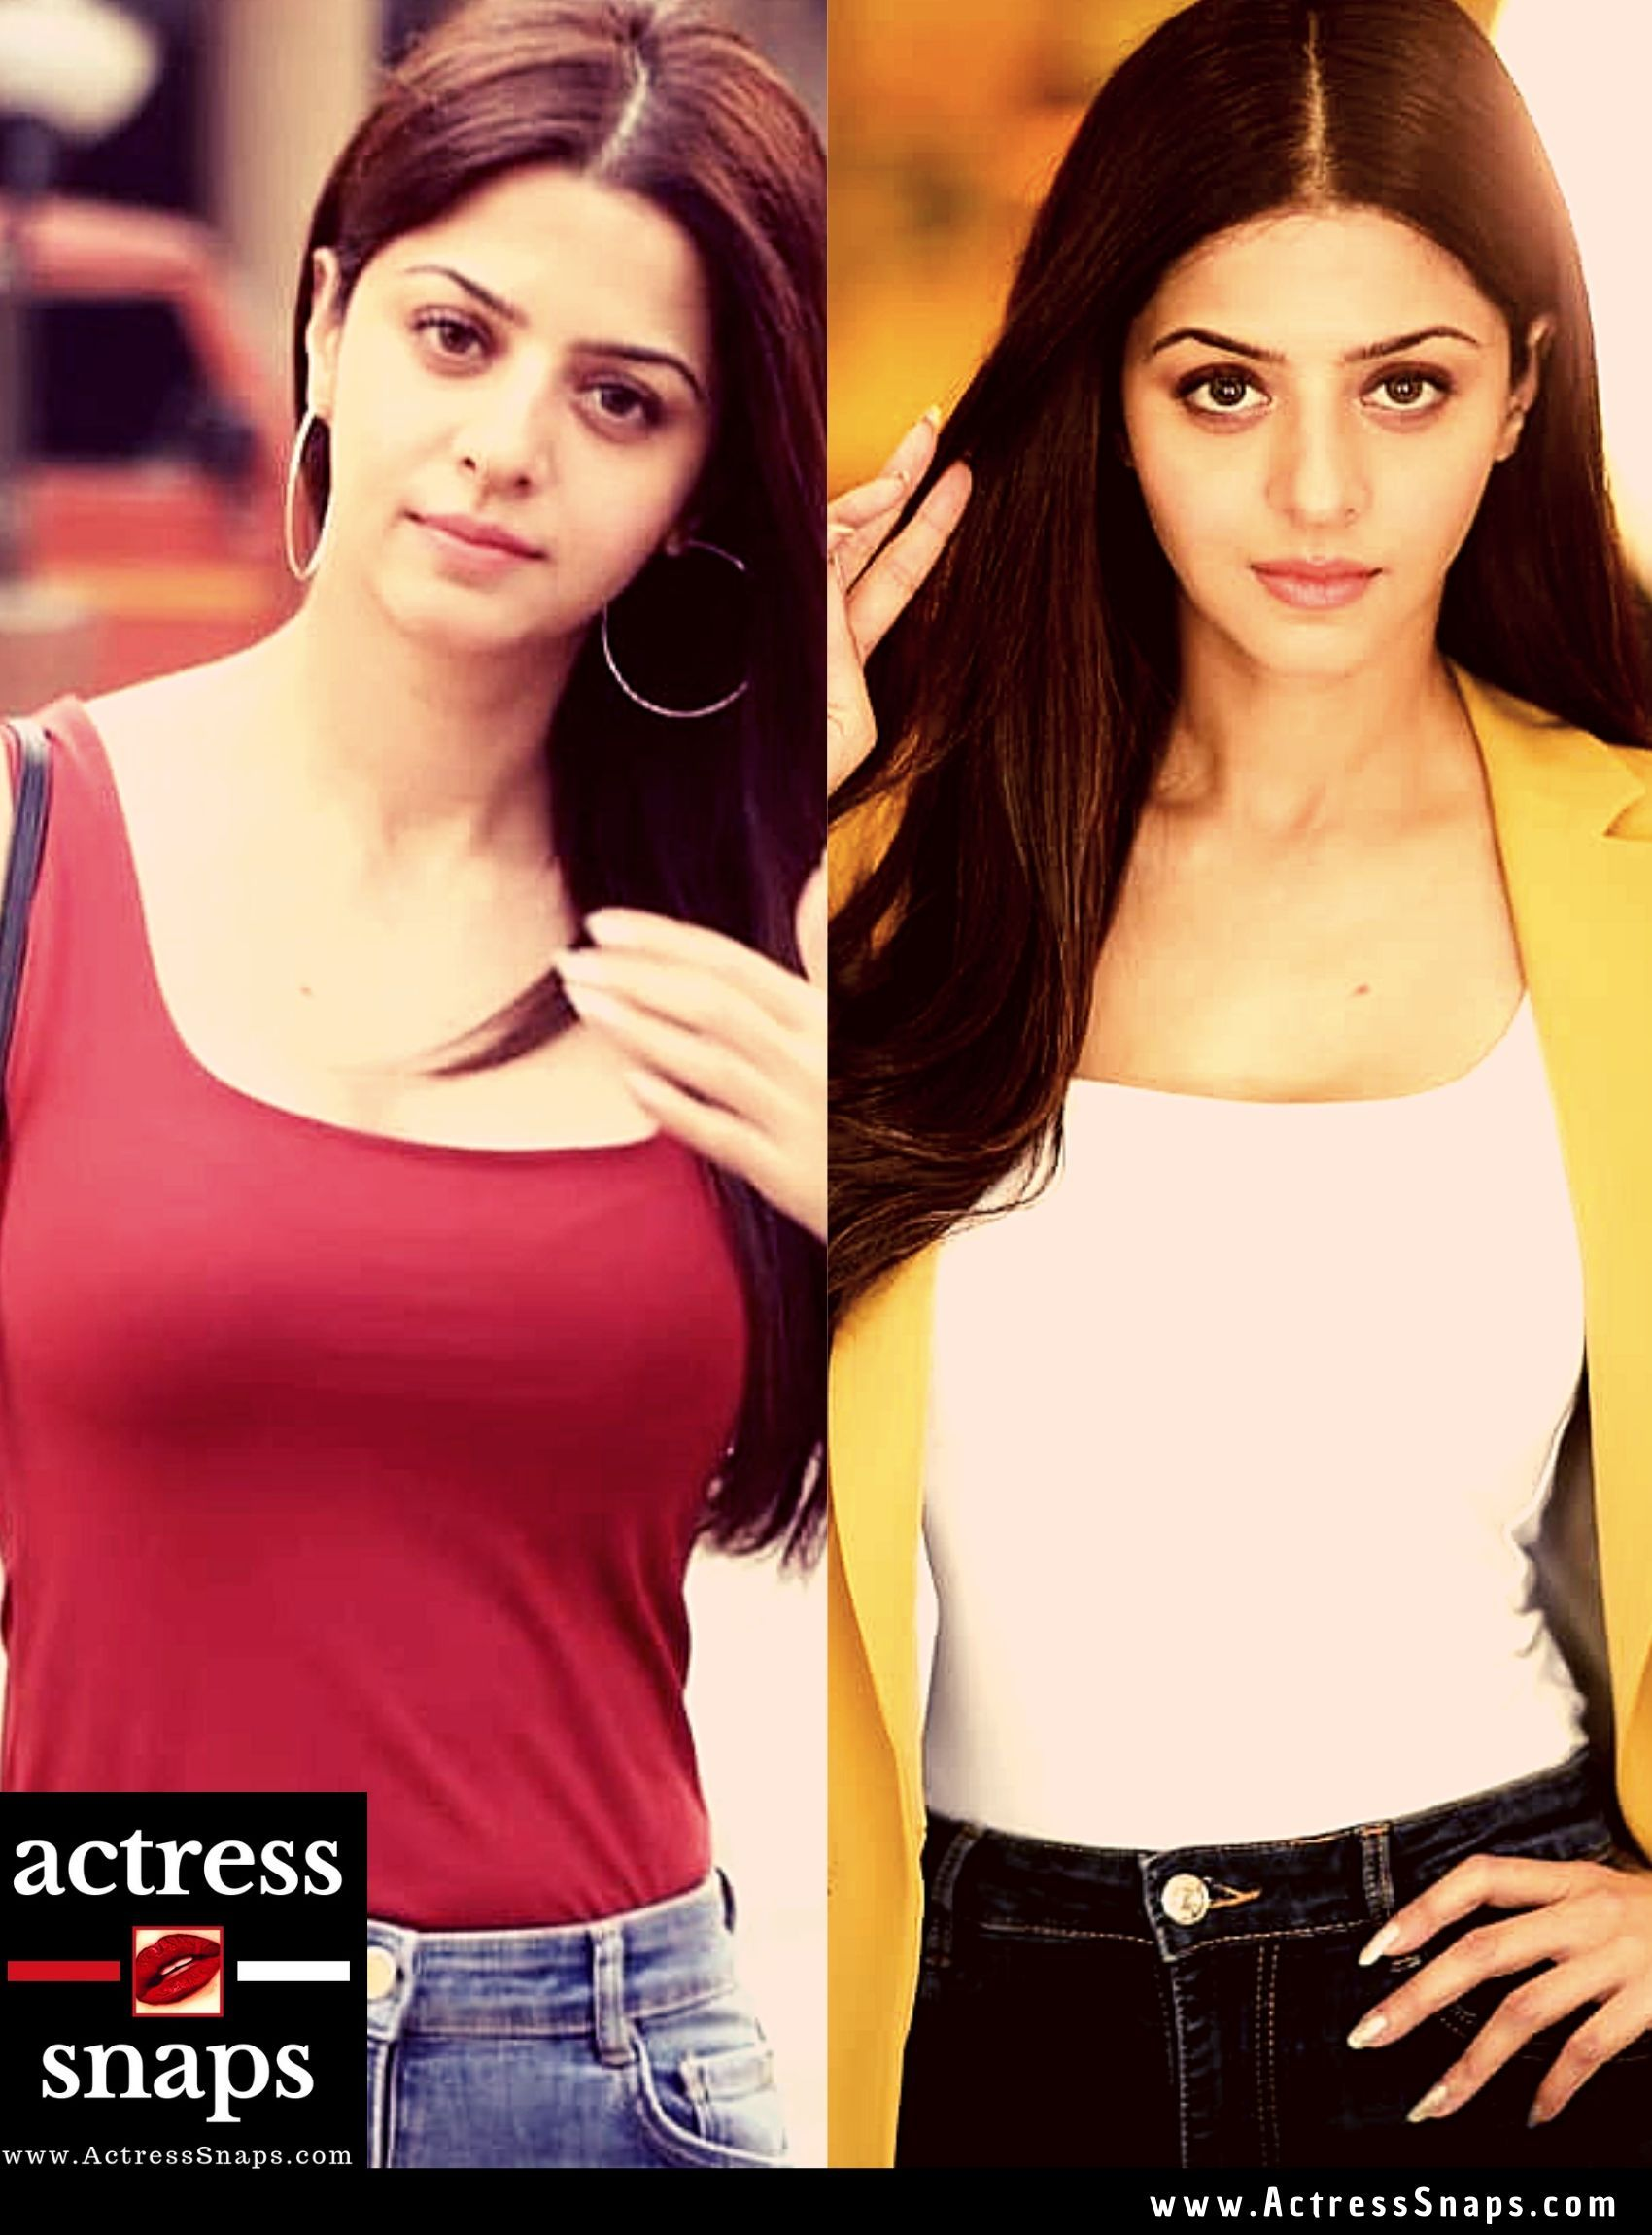 Sexy Vedhika Instagram Photos - Sexy Actress Pictures | Hot Actress Pictures - ActressSnaps.com